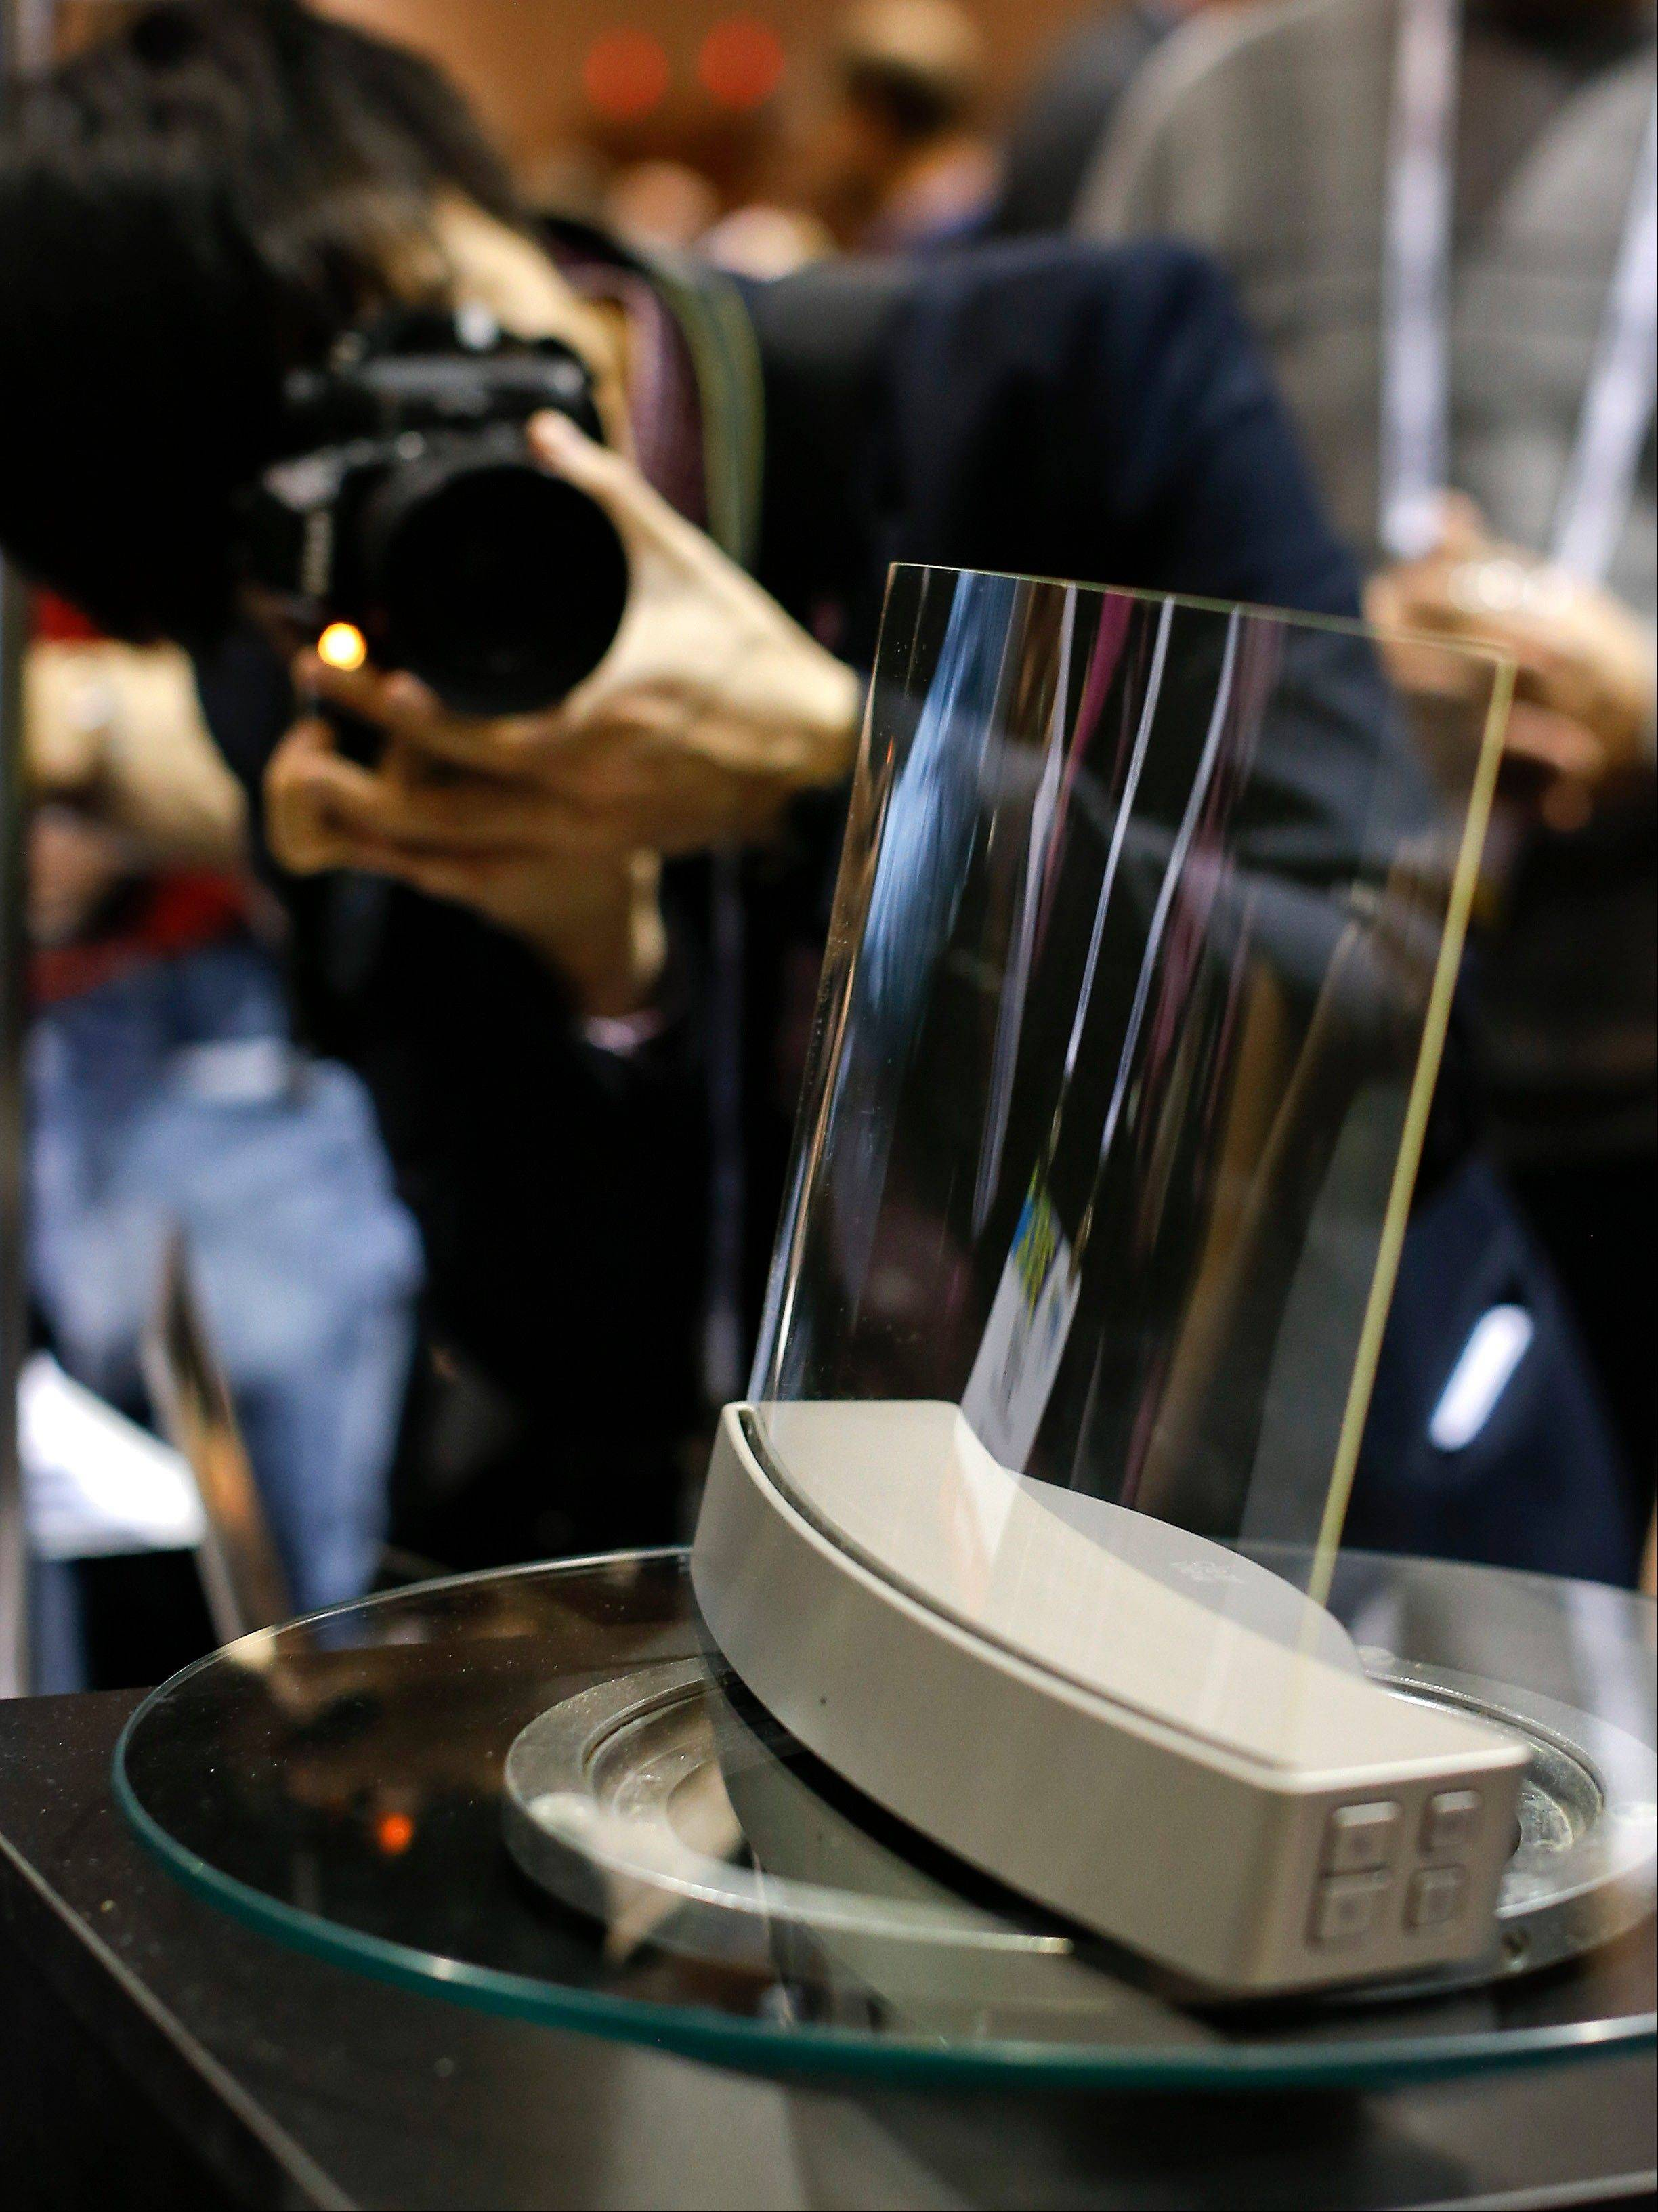 Members of the media photograph a glass speaker called Clio during the International Consumer Electronics Show in Las Vegas. The speaker, produced by ClearView Audio uses a single piece of curved millimeter-thick acrylic glass that sits on a dock which vibrates it in a finely tuned way so that it can play music. It works with Bluetooth streaming and with a 3.5 millimeter jack.